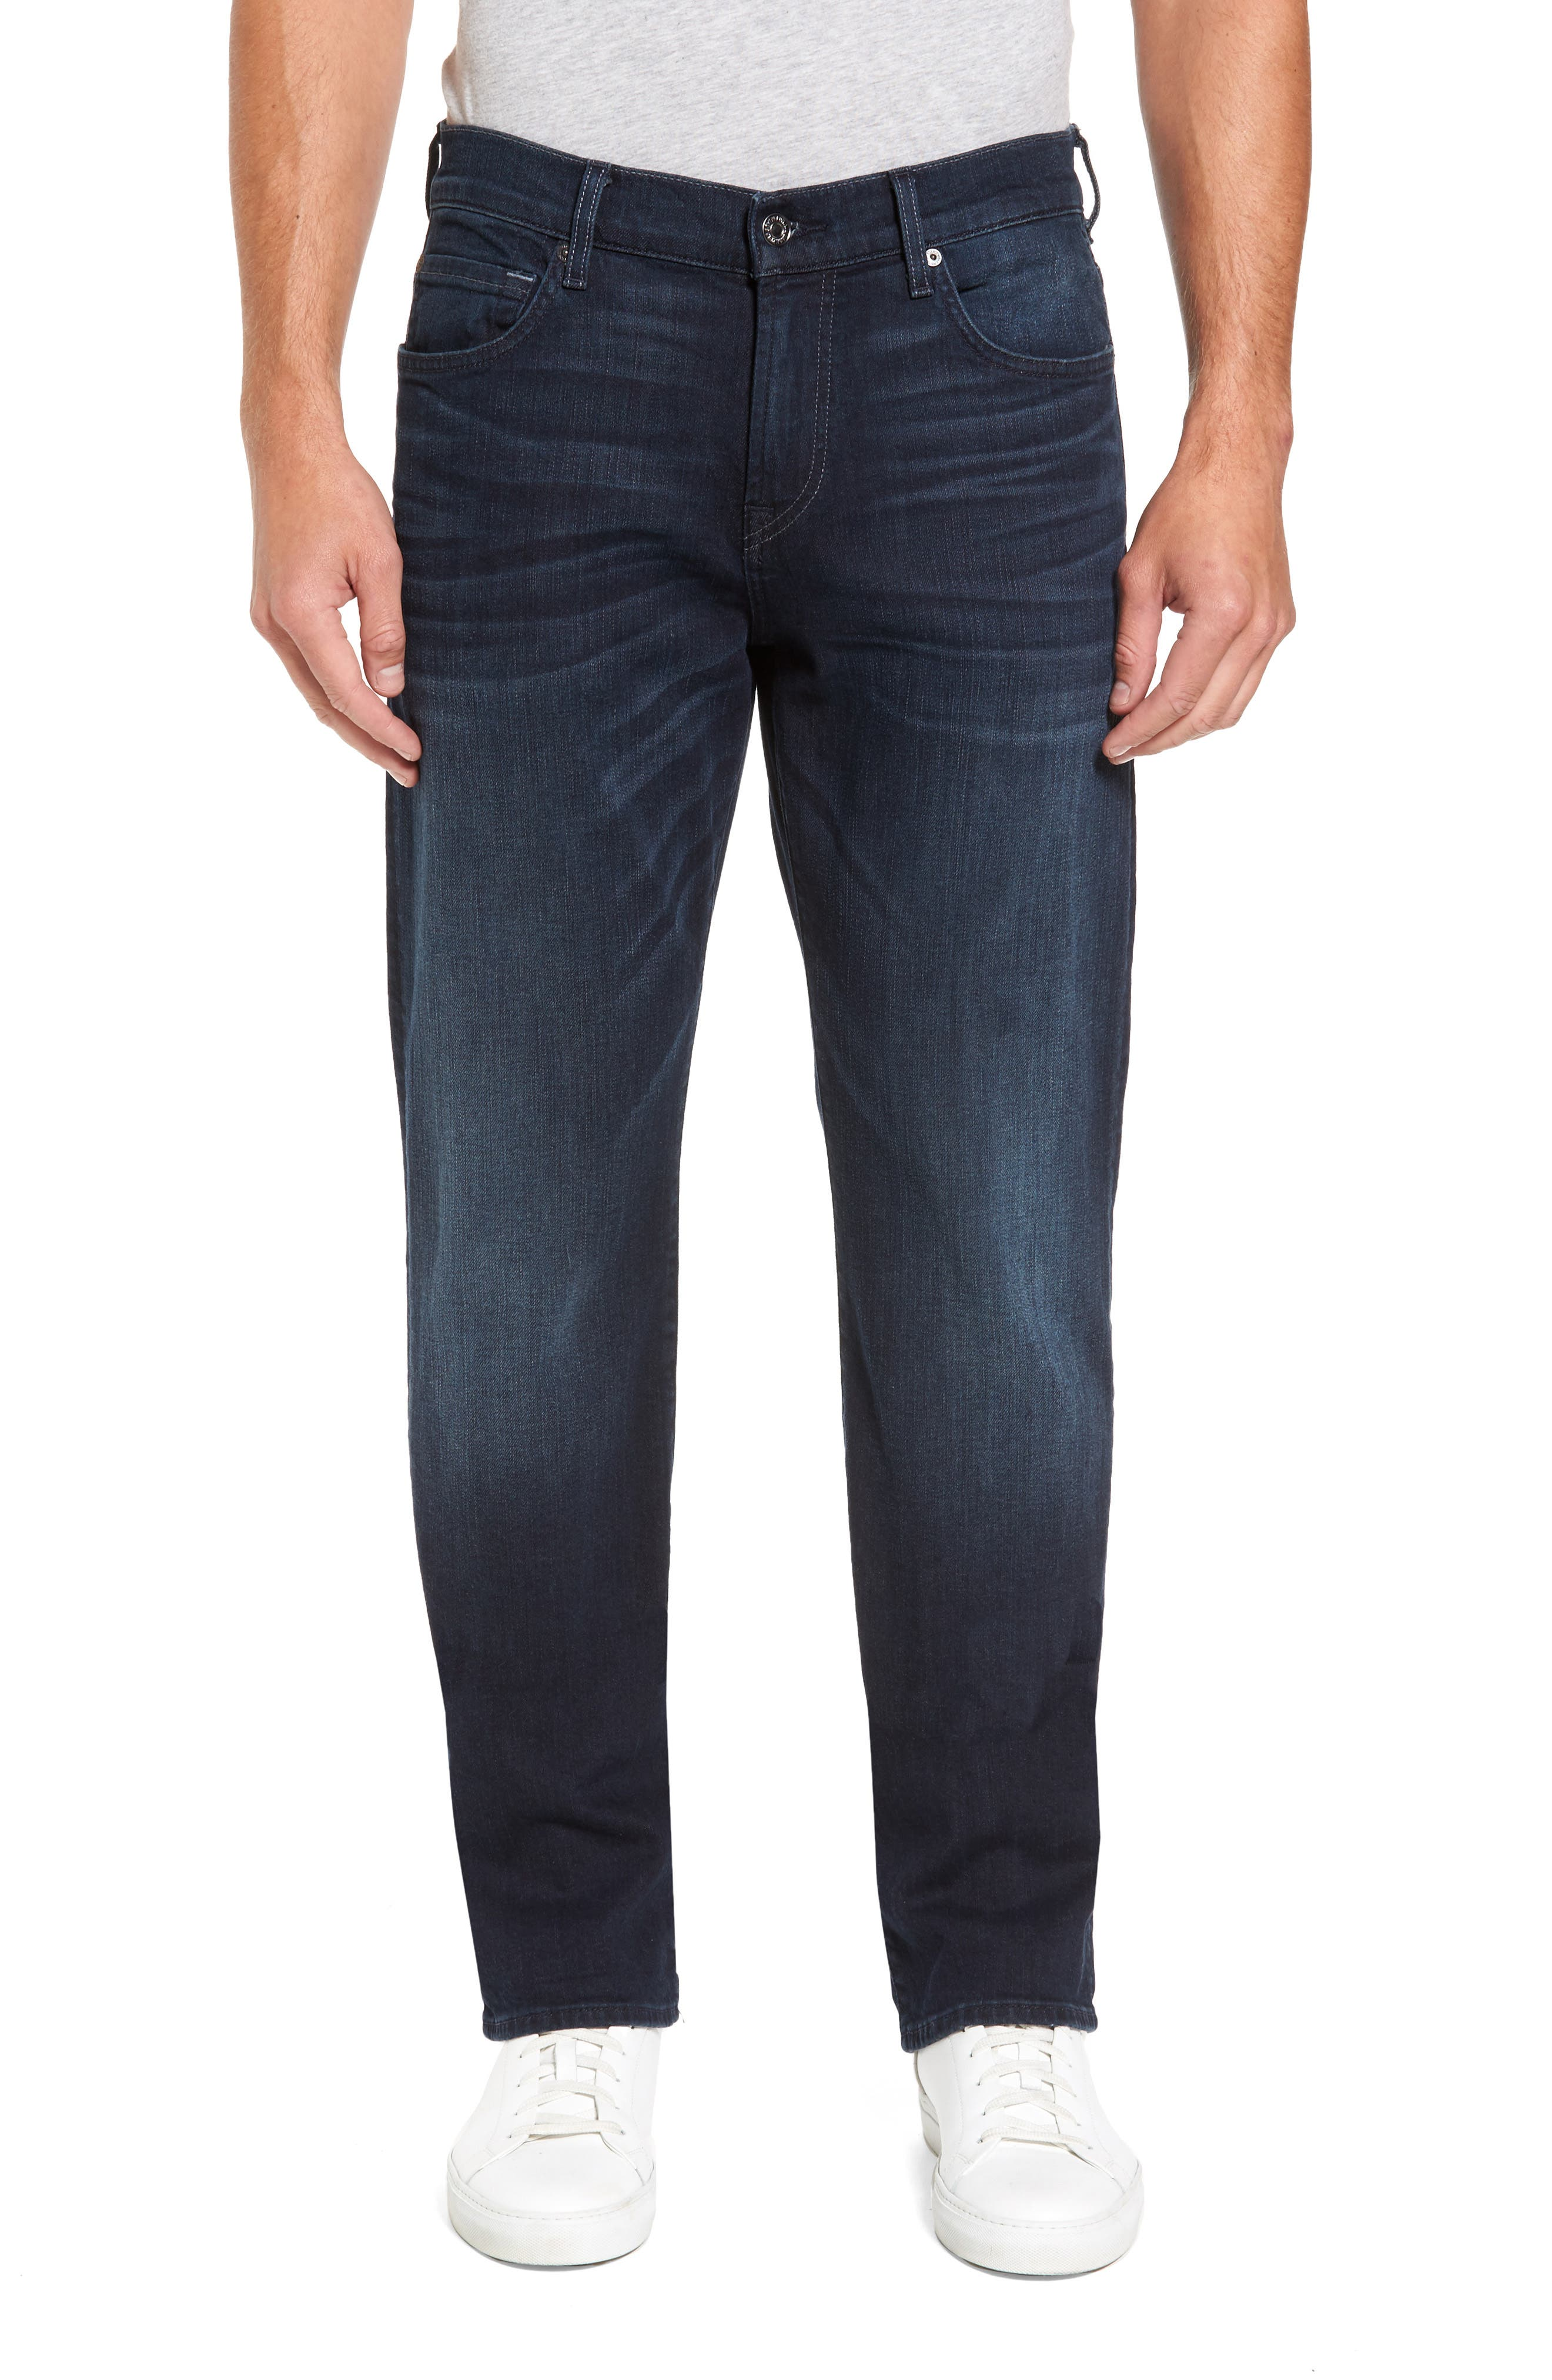 Luxe Performance - Carsen Straight Leg Jeans,                         Main,                         color, DARK CURRENT